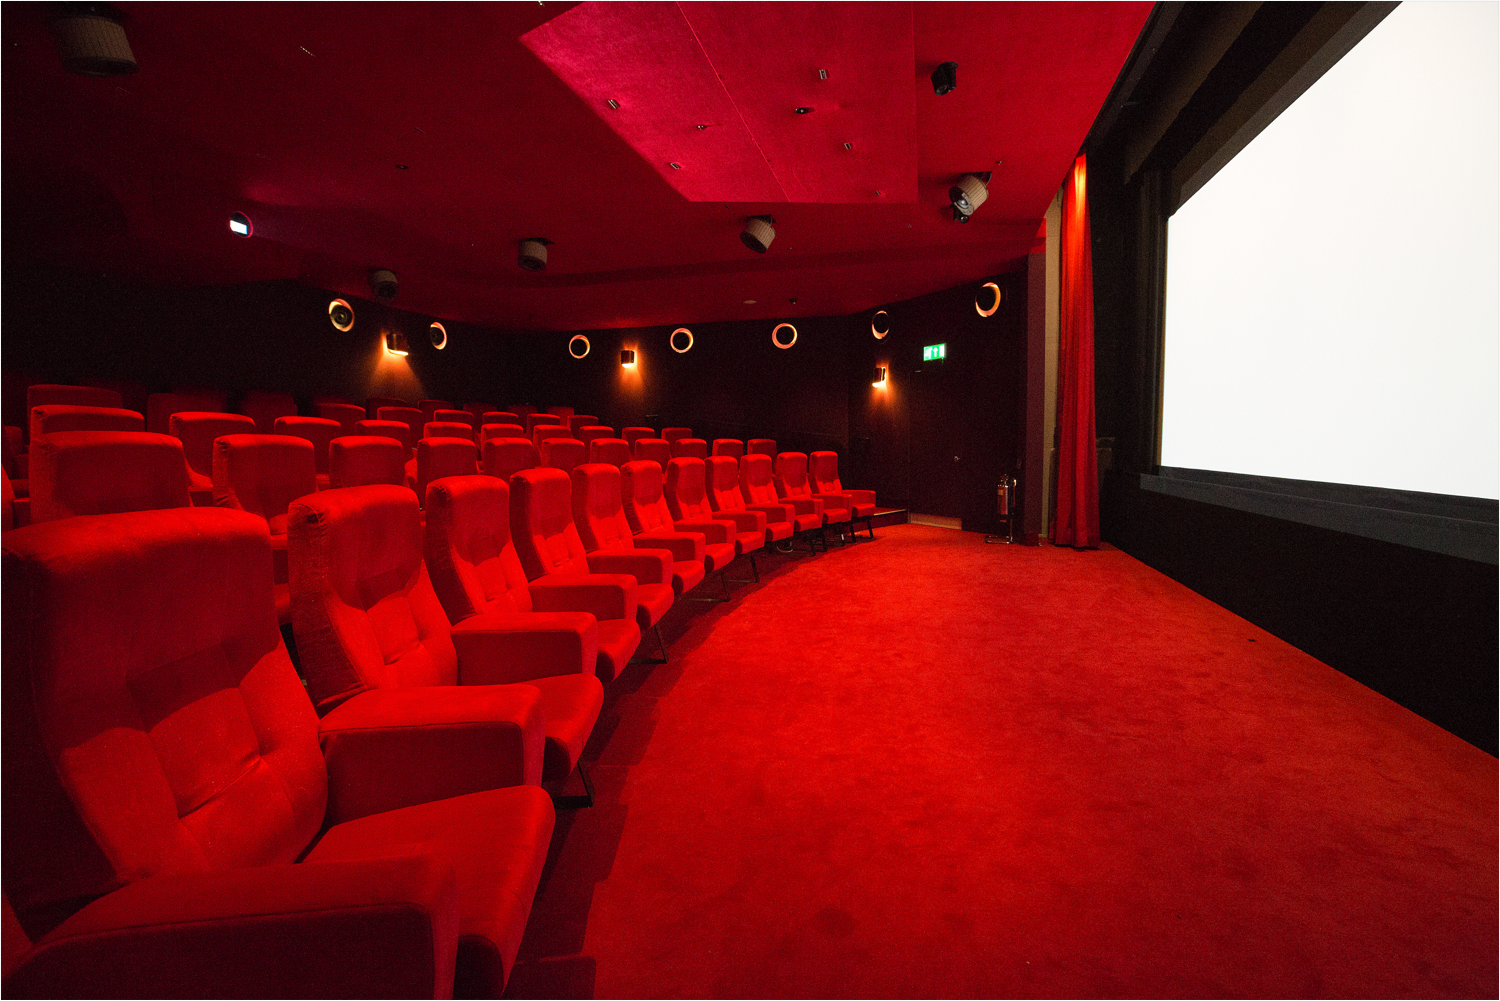 Selfridges Cinema